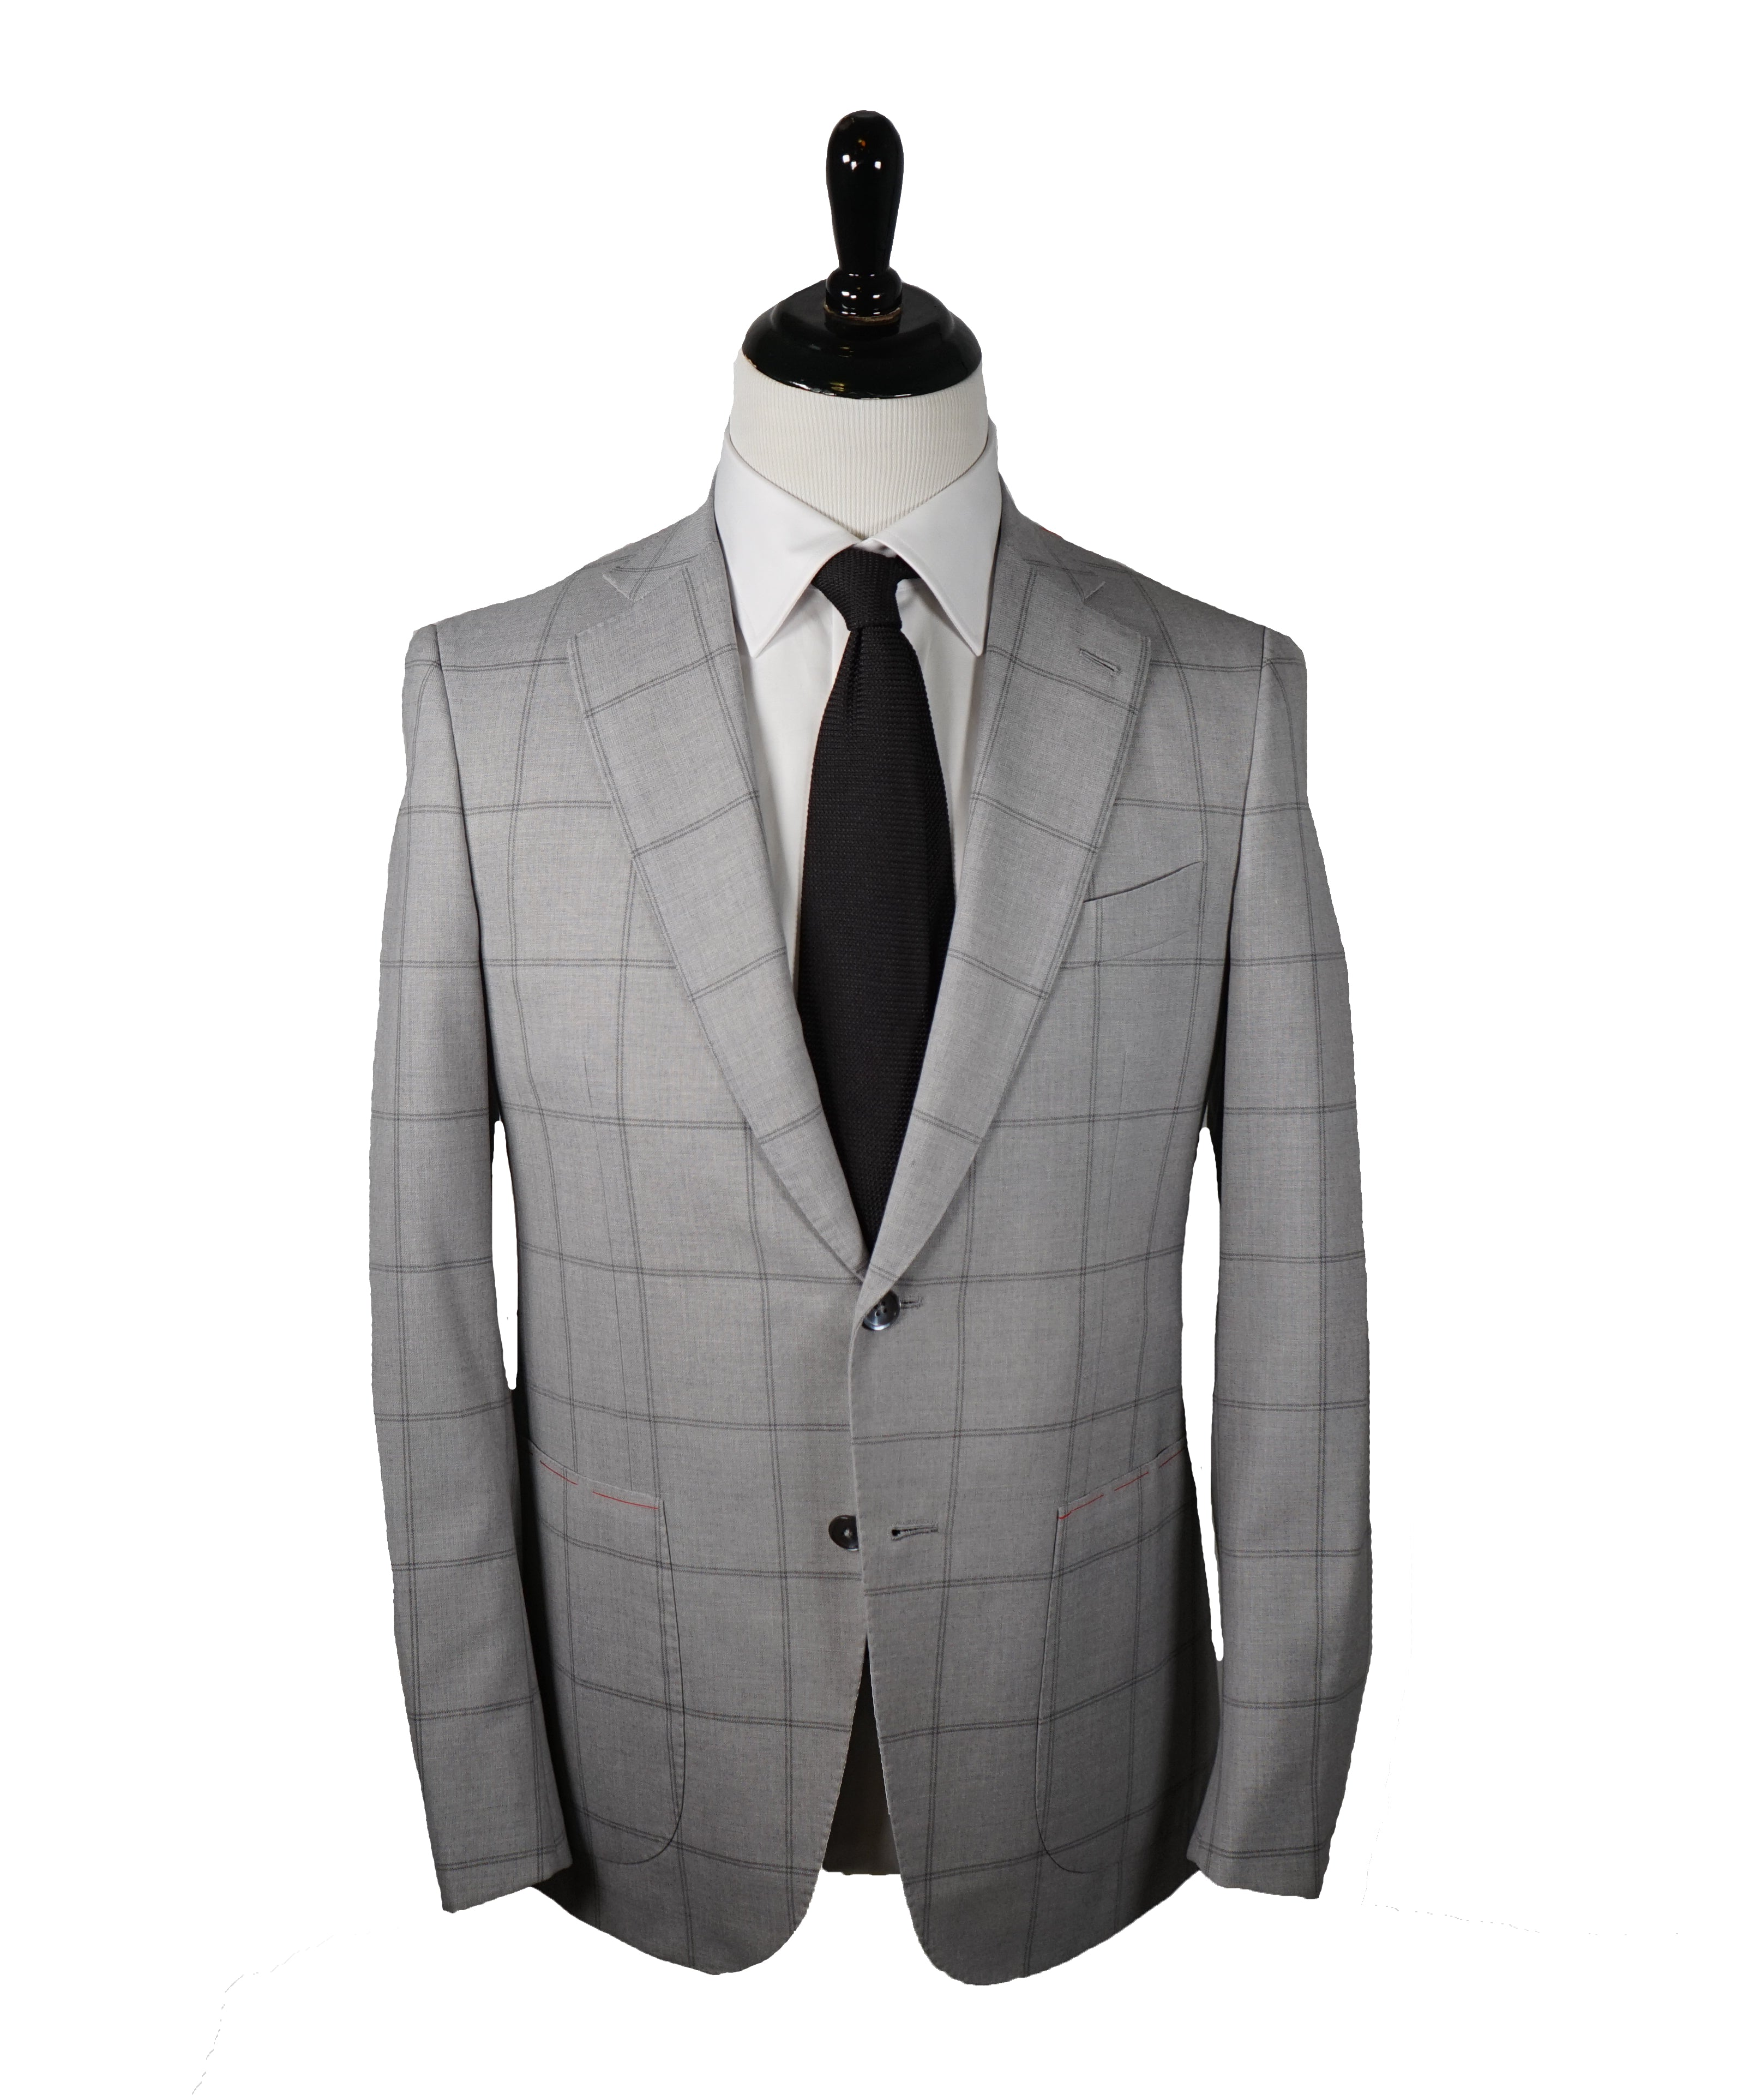 ISAIA - Cashmere /Wool /Mohair Blend Gray Check Suit LOGO COLLAR - 38R